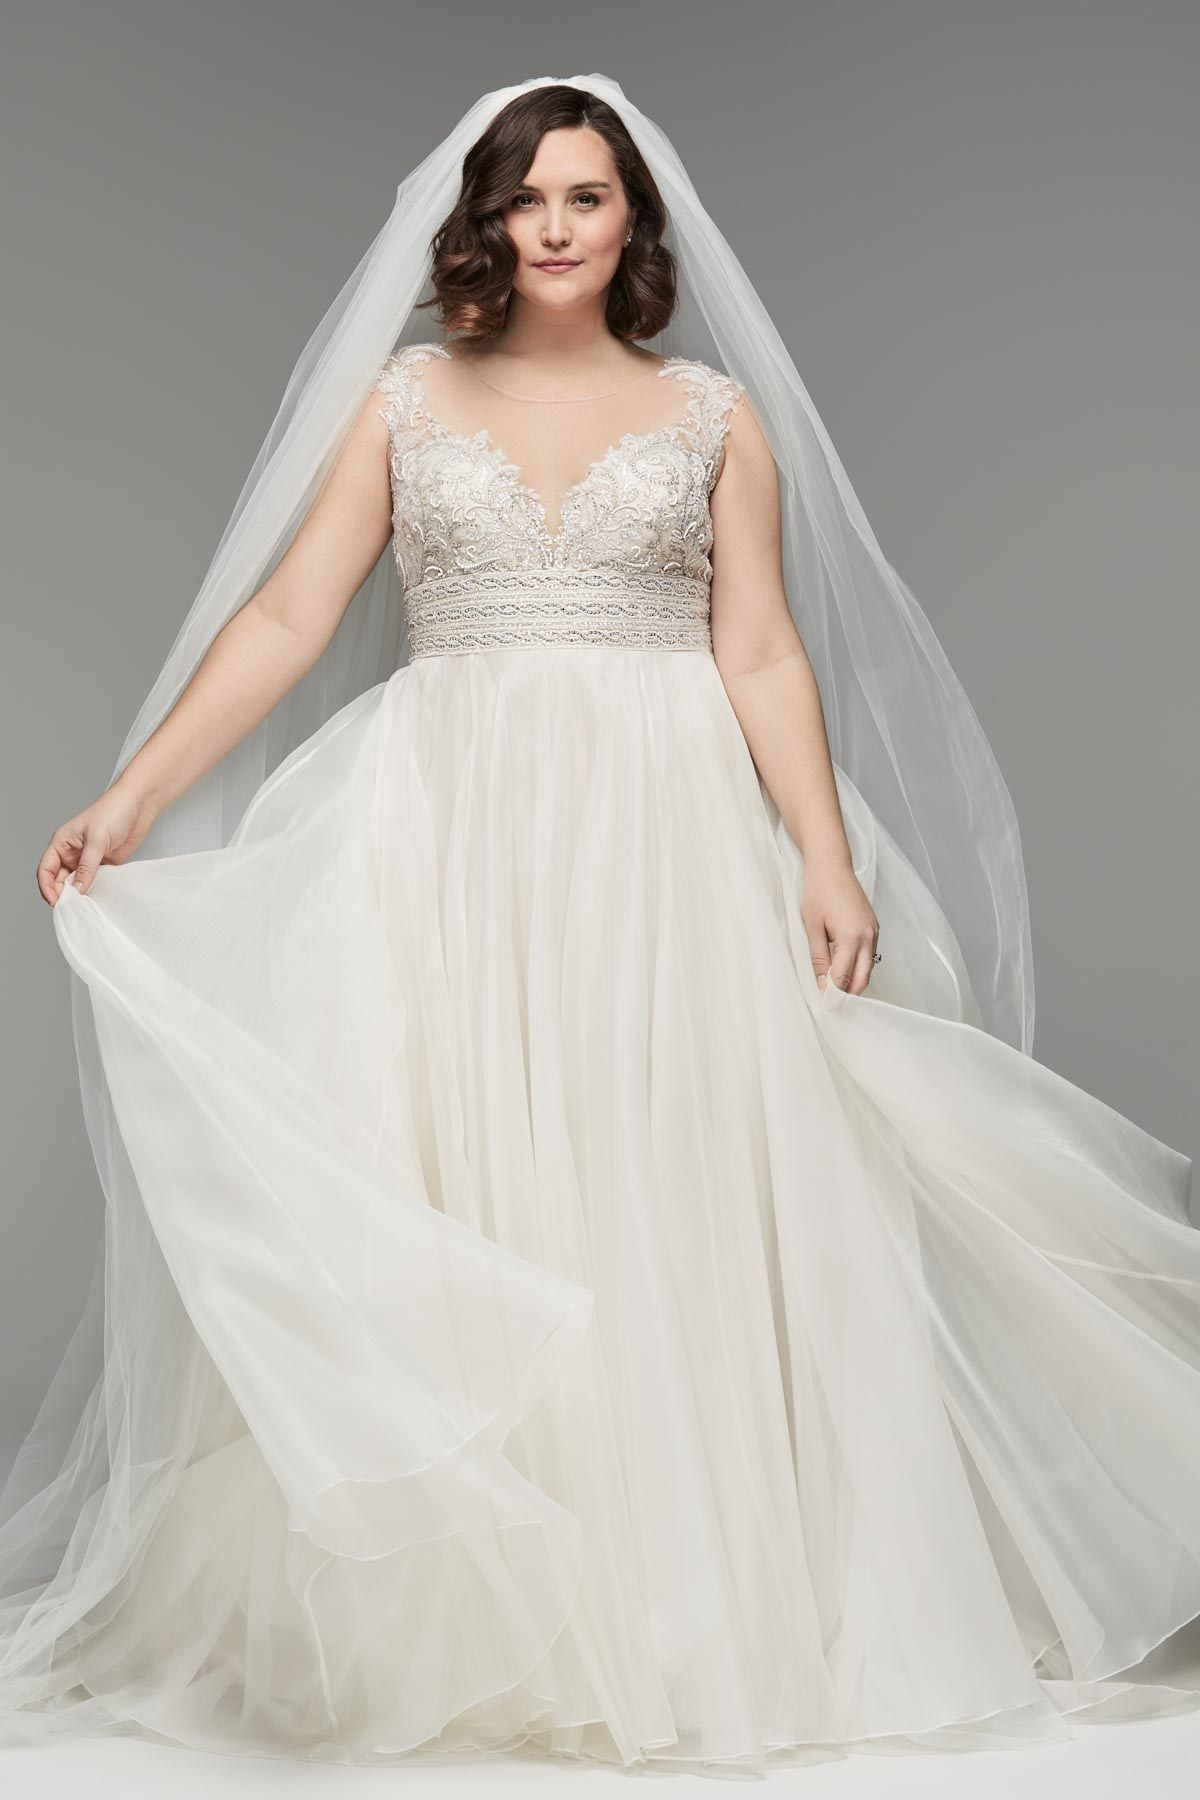 27 Plus Size Wedding Dresses To Flatter And Flaunt Your Curves Plus Size Wedding Gowns Wedding Dress Outfit Wedding Dresses Plus Size [ 1800 x 1200 Pixel ]